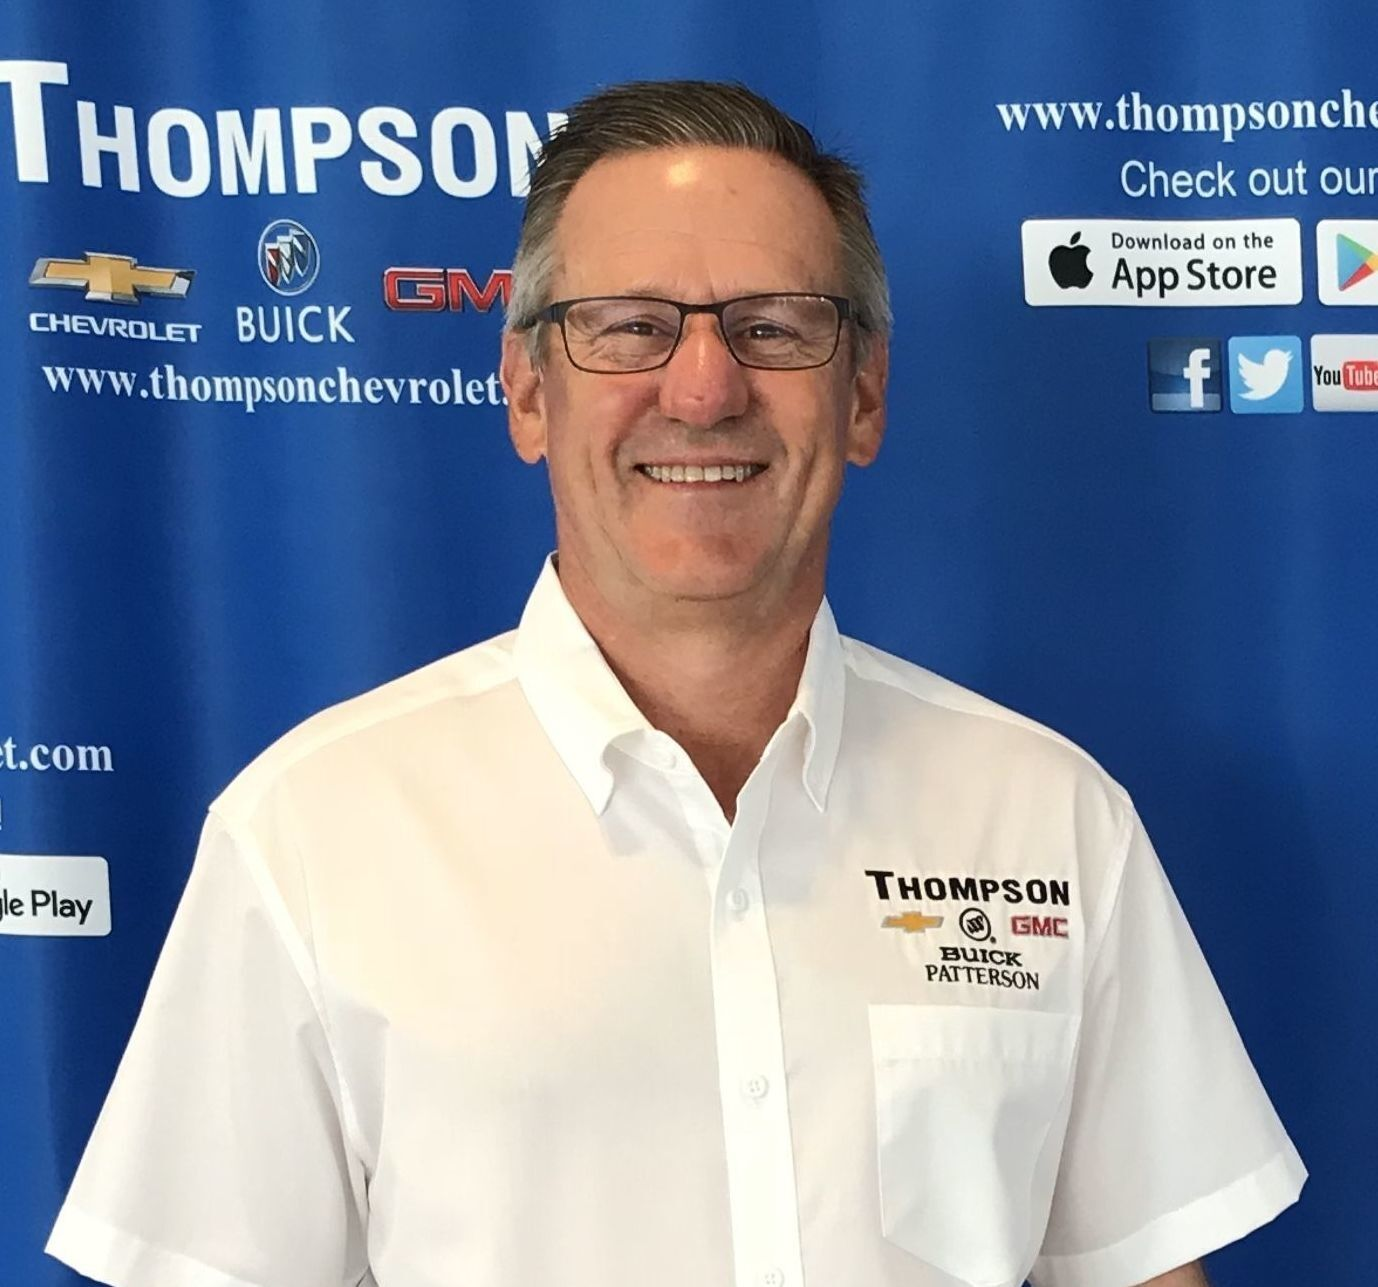 Thompson Chevrolet Buick GMC Staff in Patterson, CA